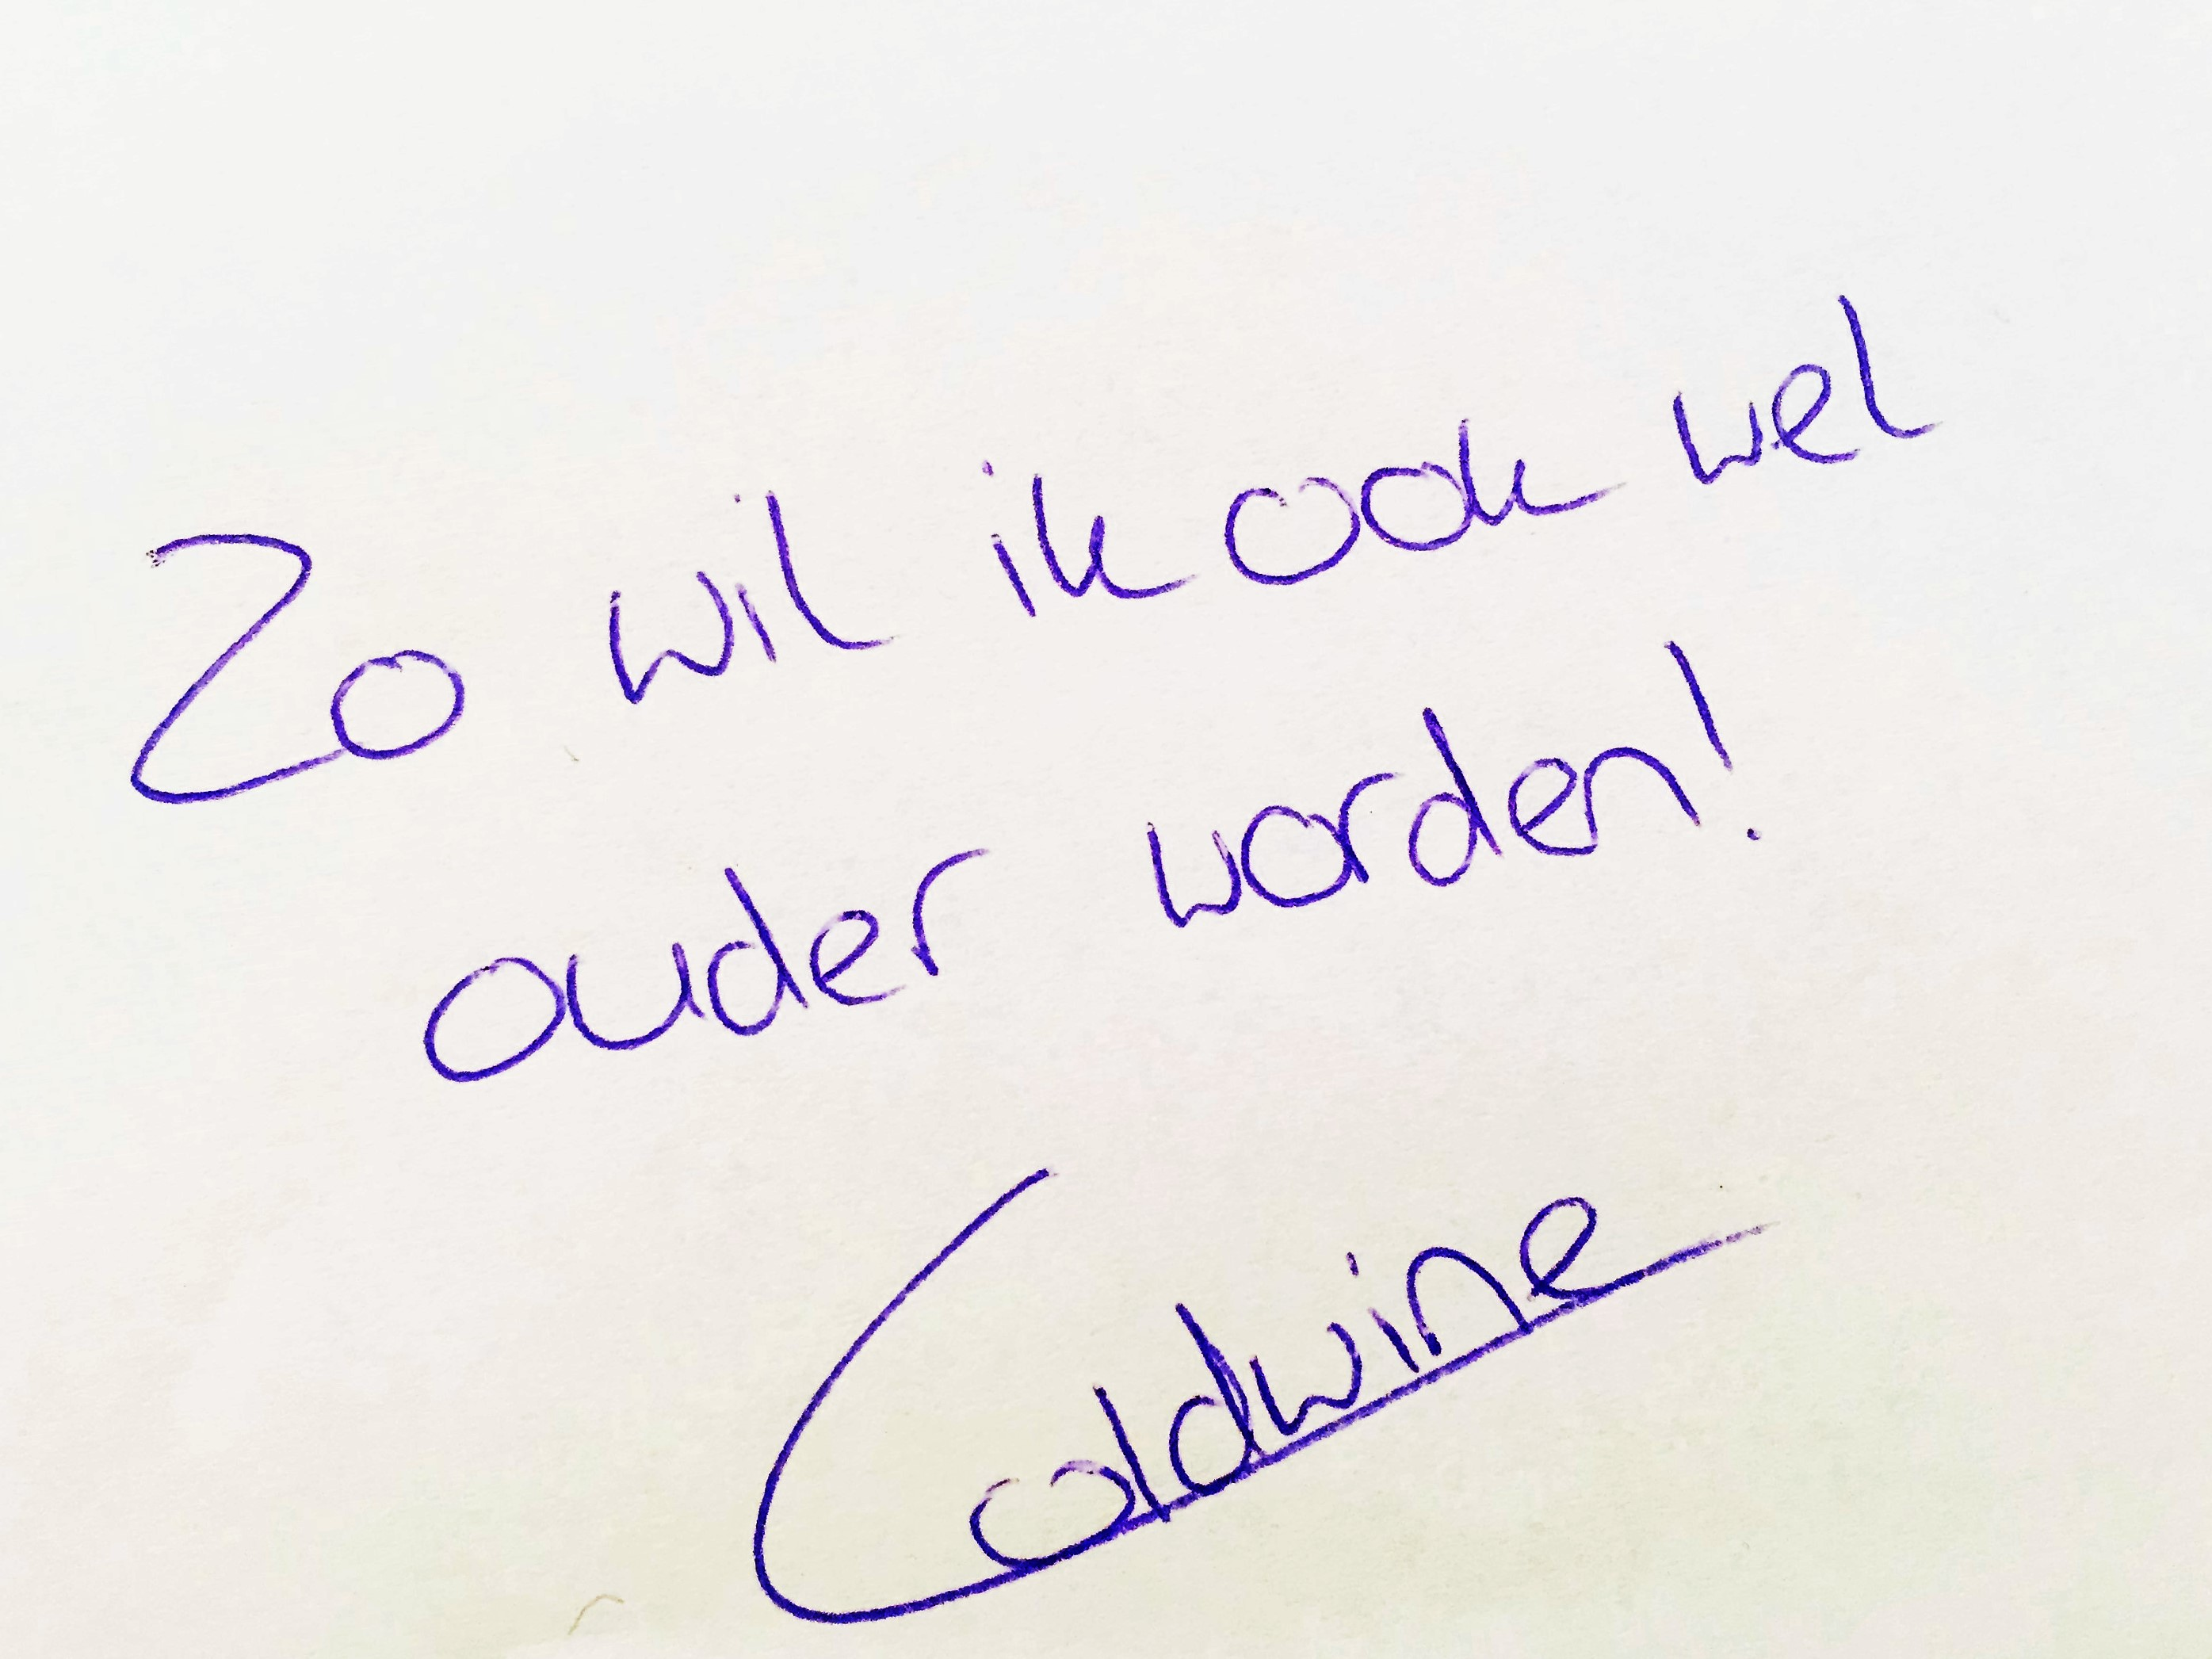 colwine-quote-1